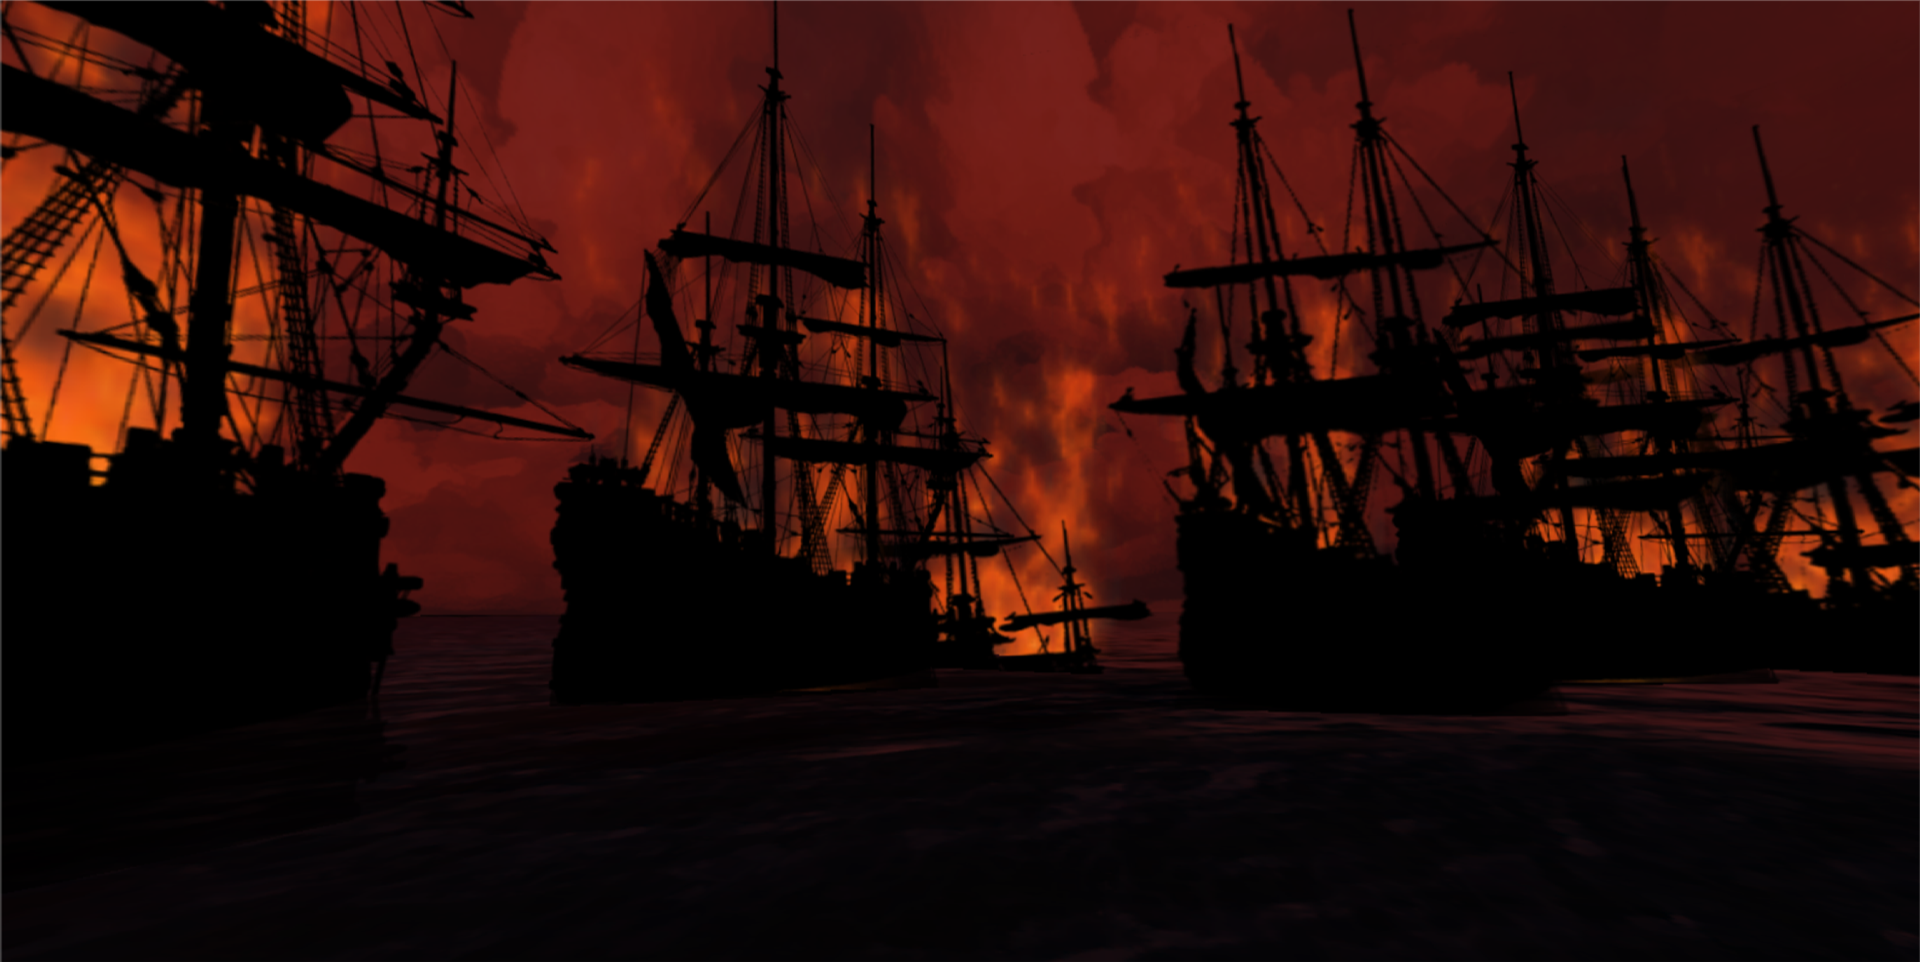 The Dutch fleet ablaze